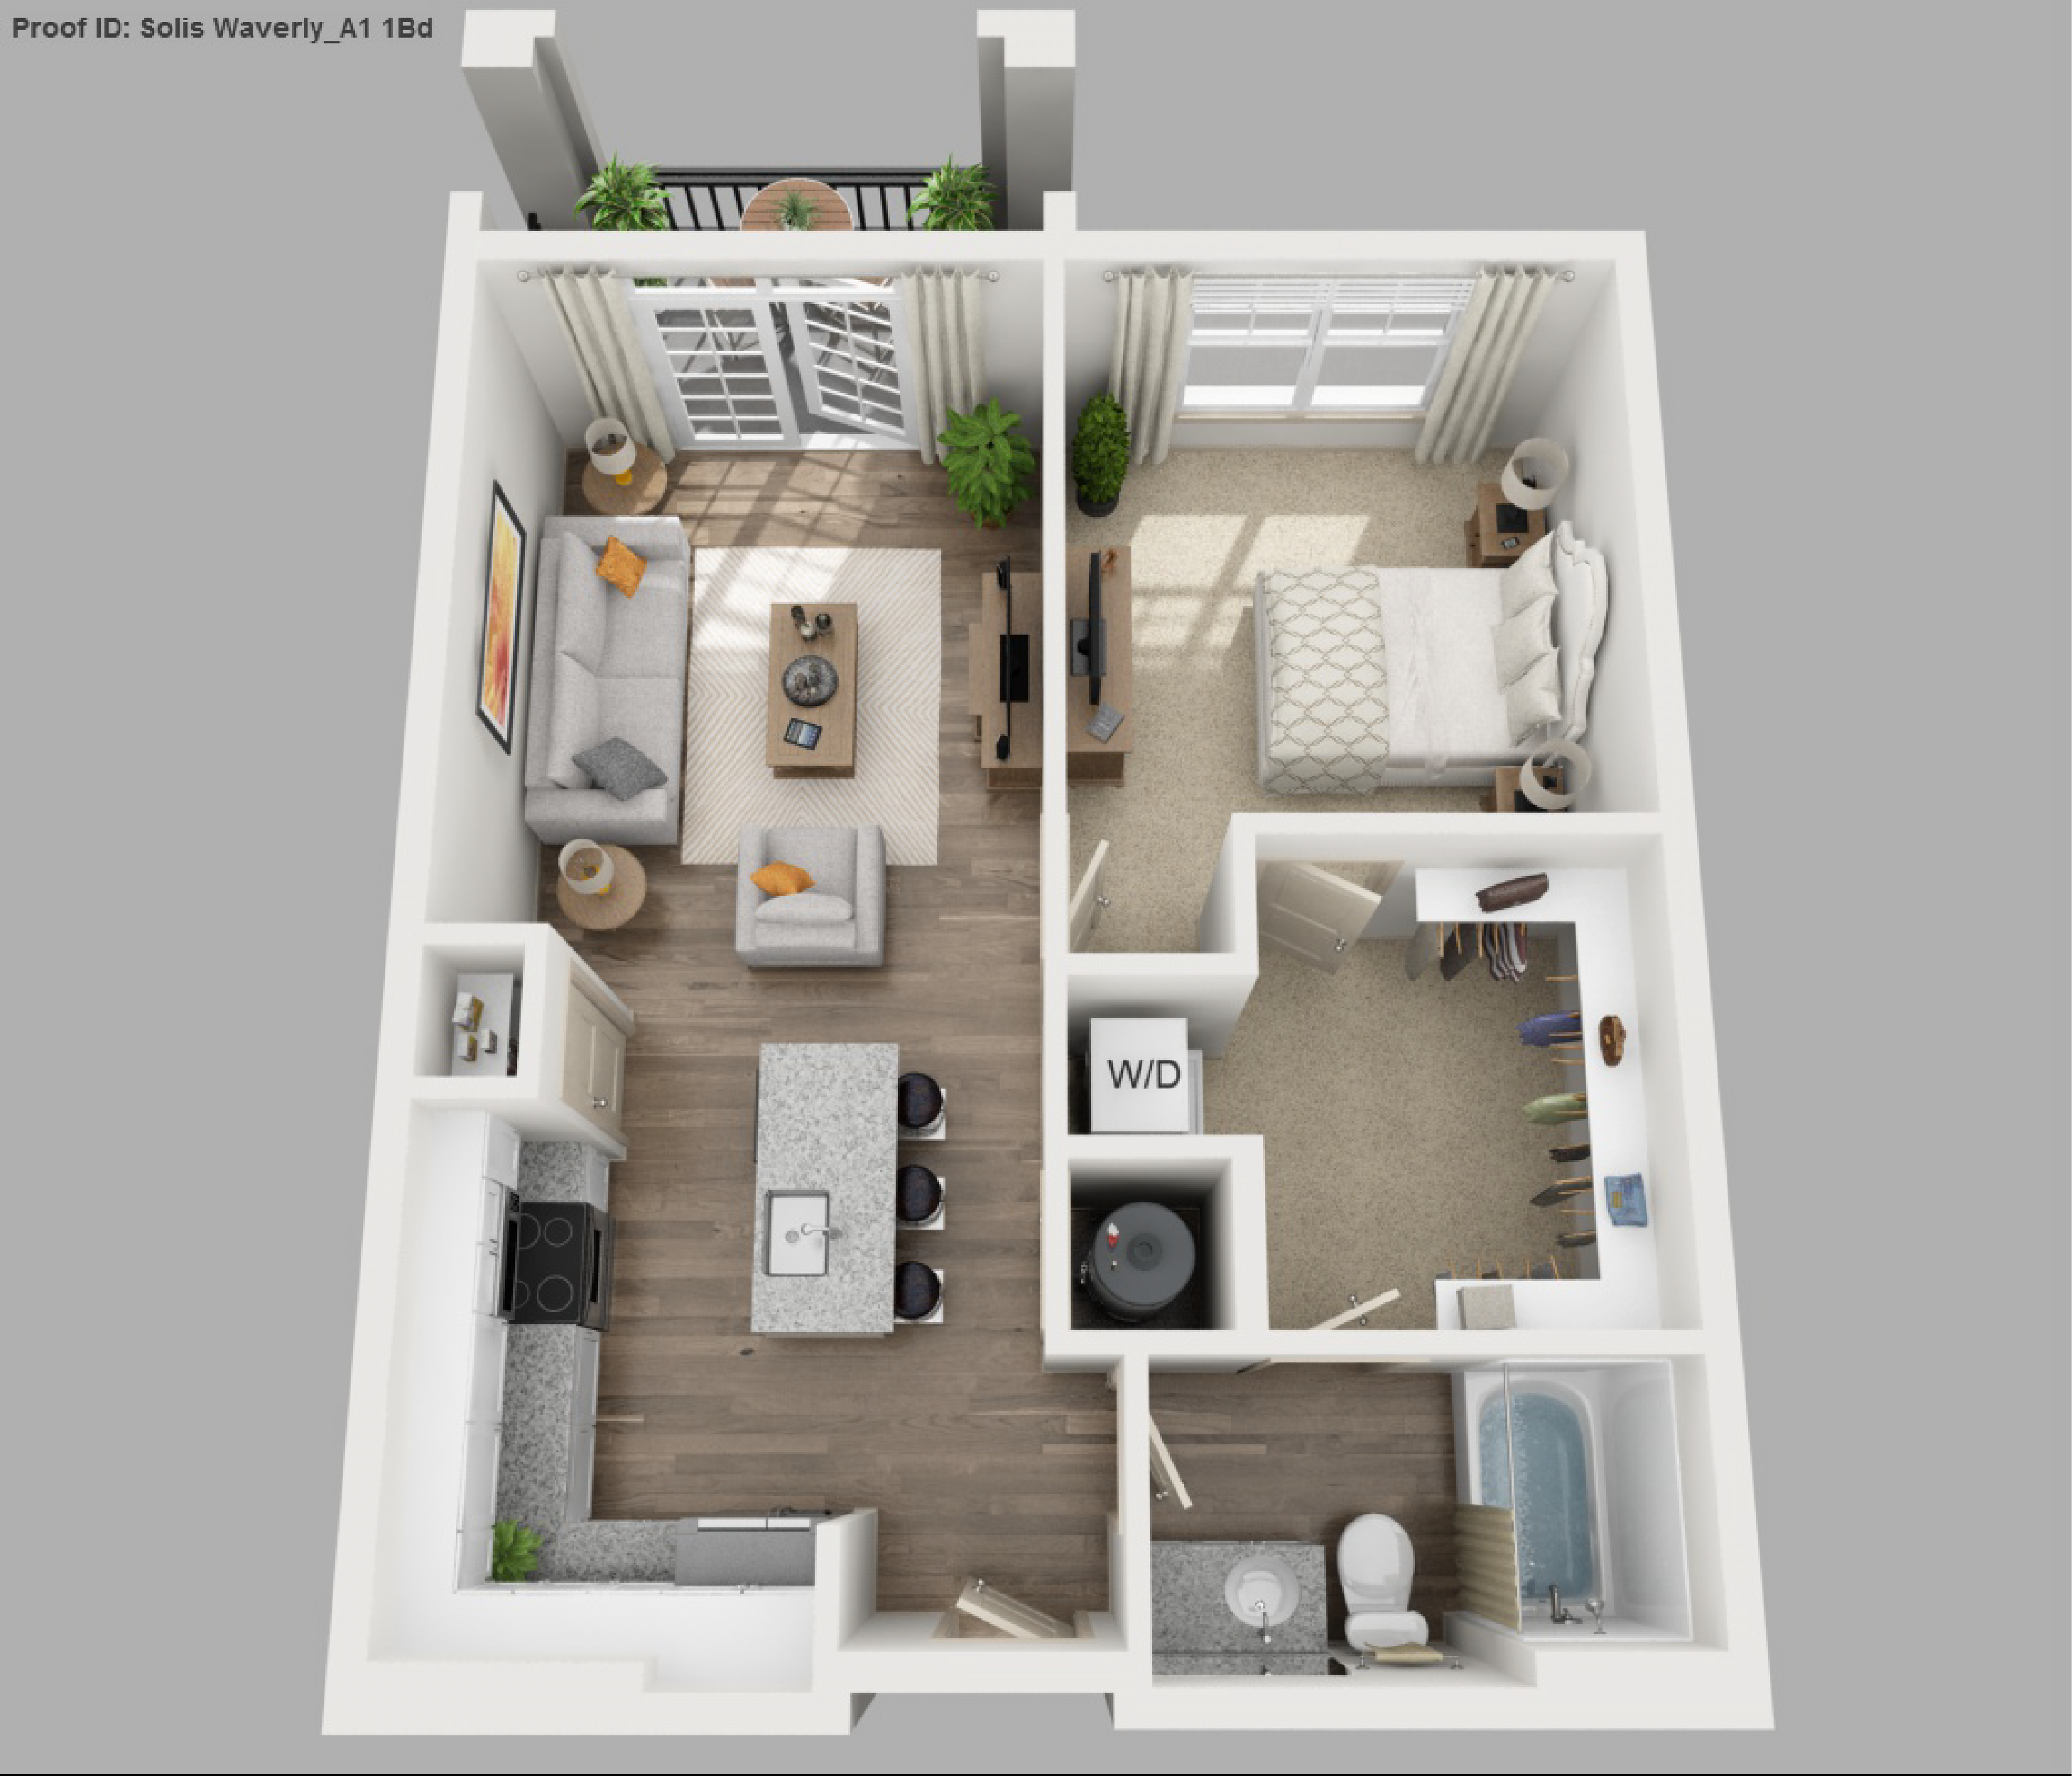 One bedroom apartments floor plans house plans for Apartment one bedroom design